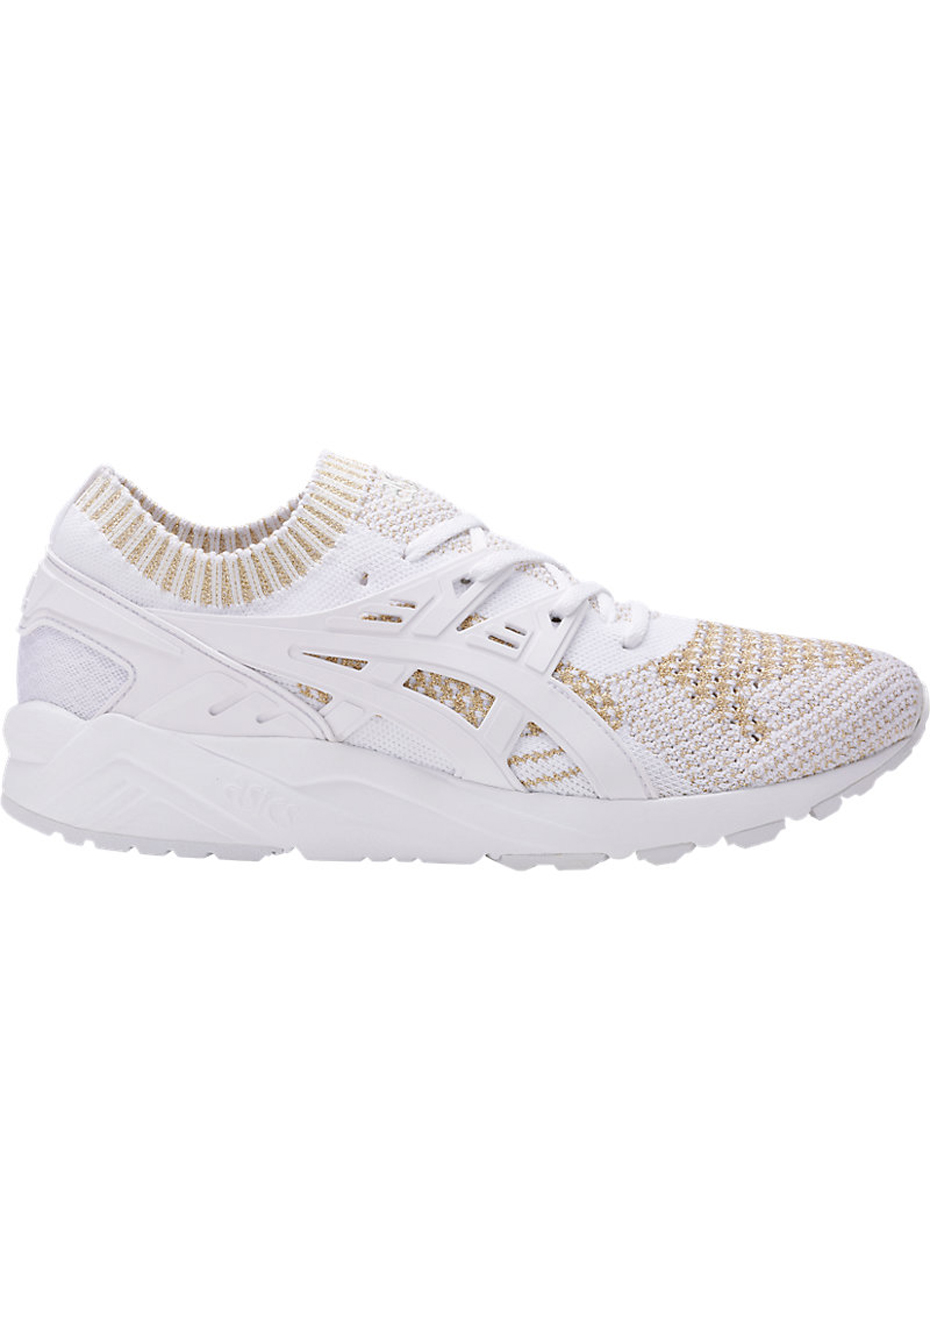 Asics Gel Kayano Trainer Knit outlete